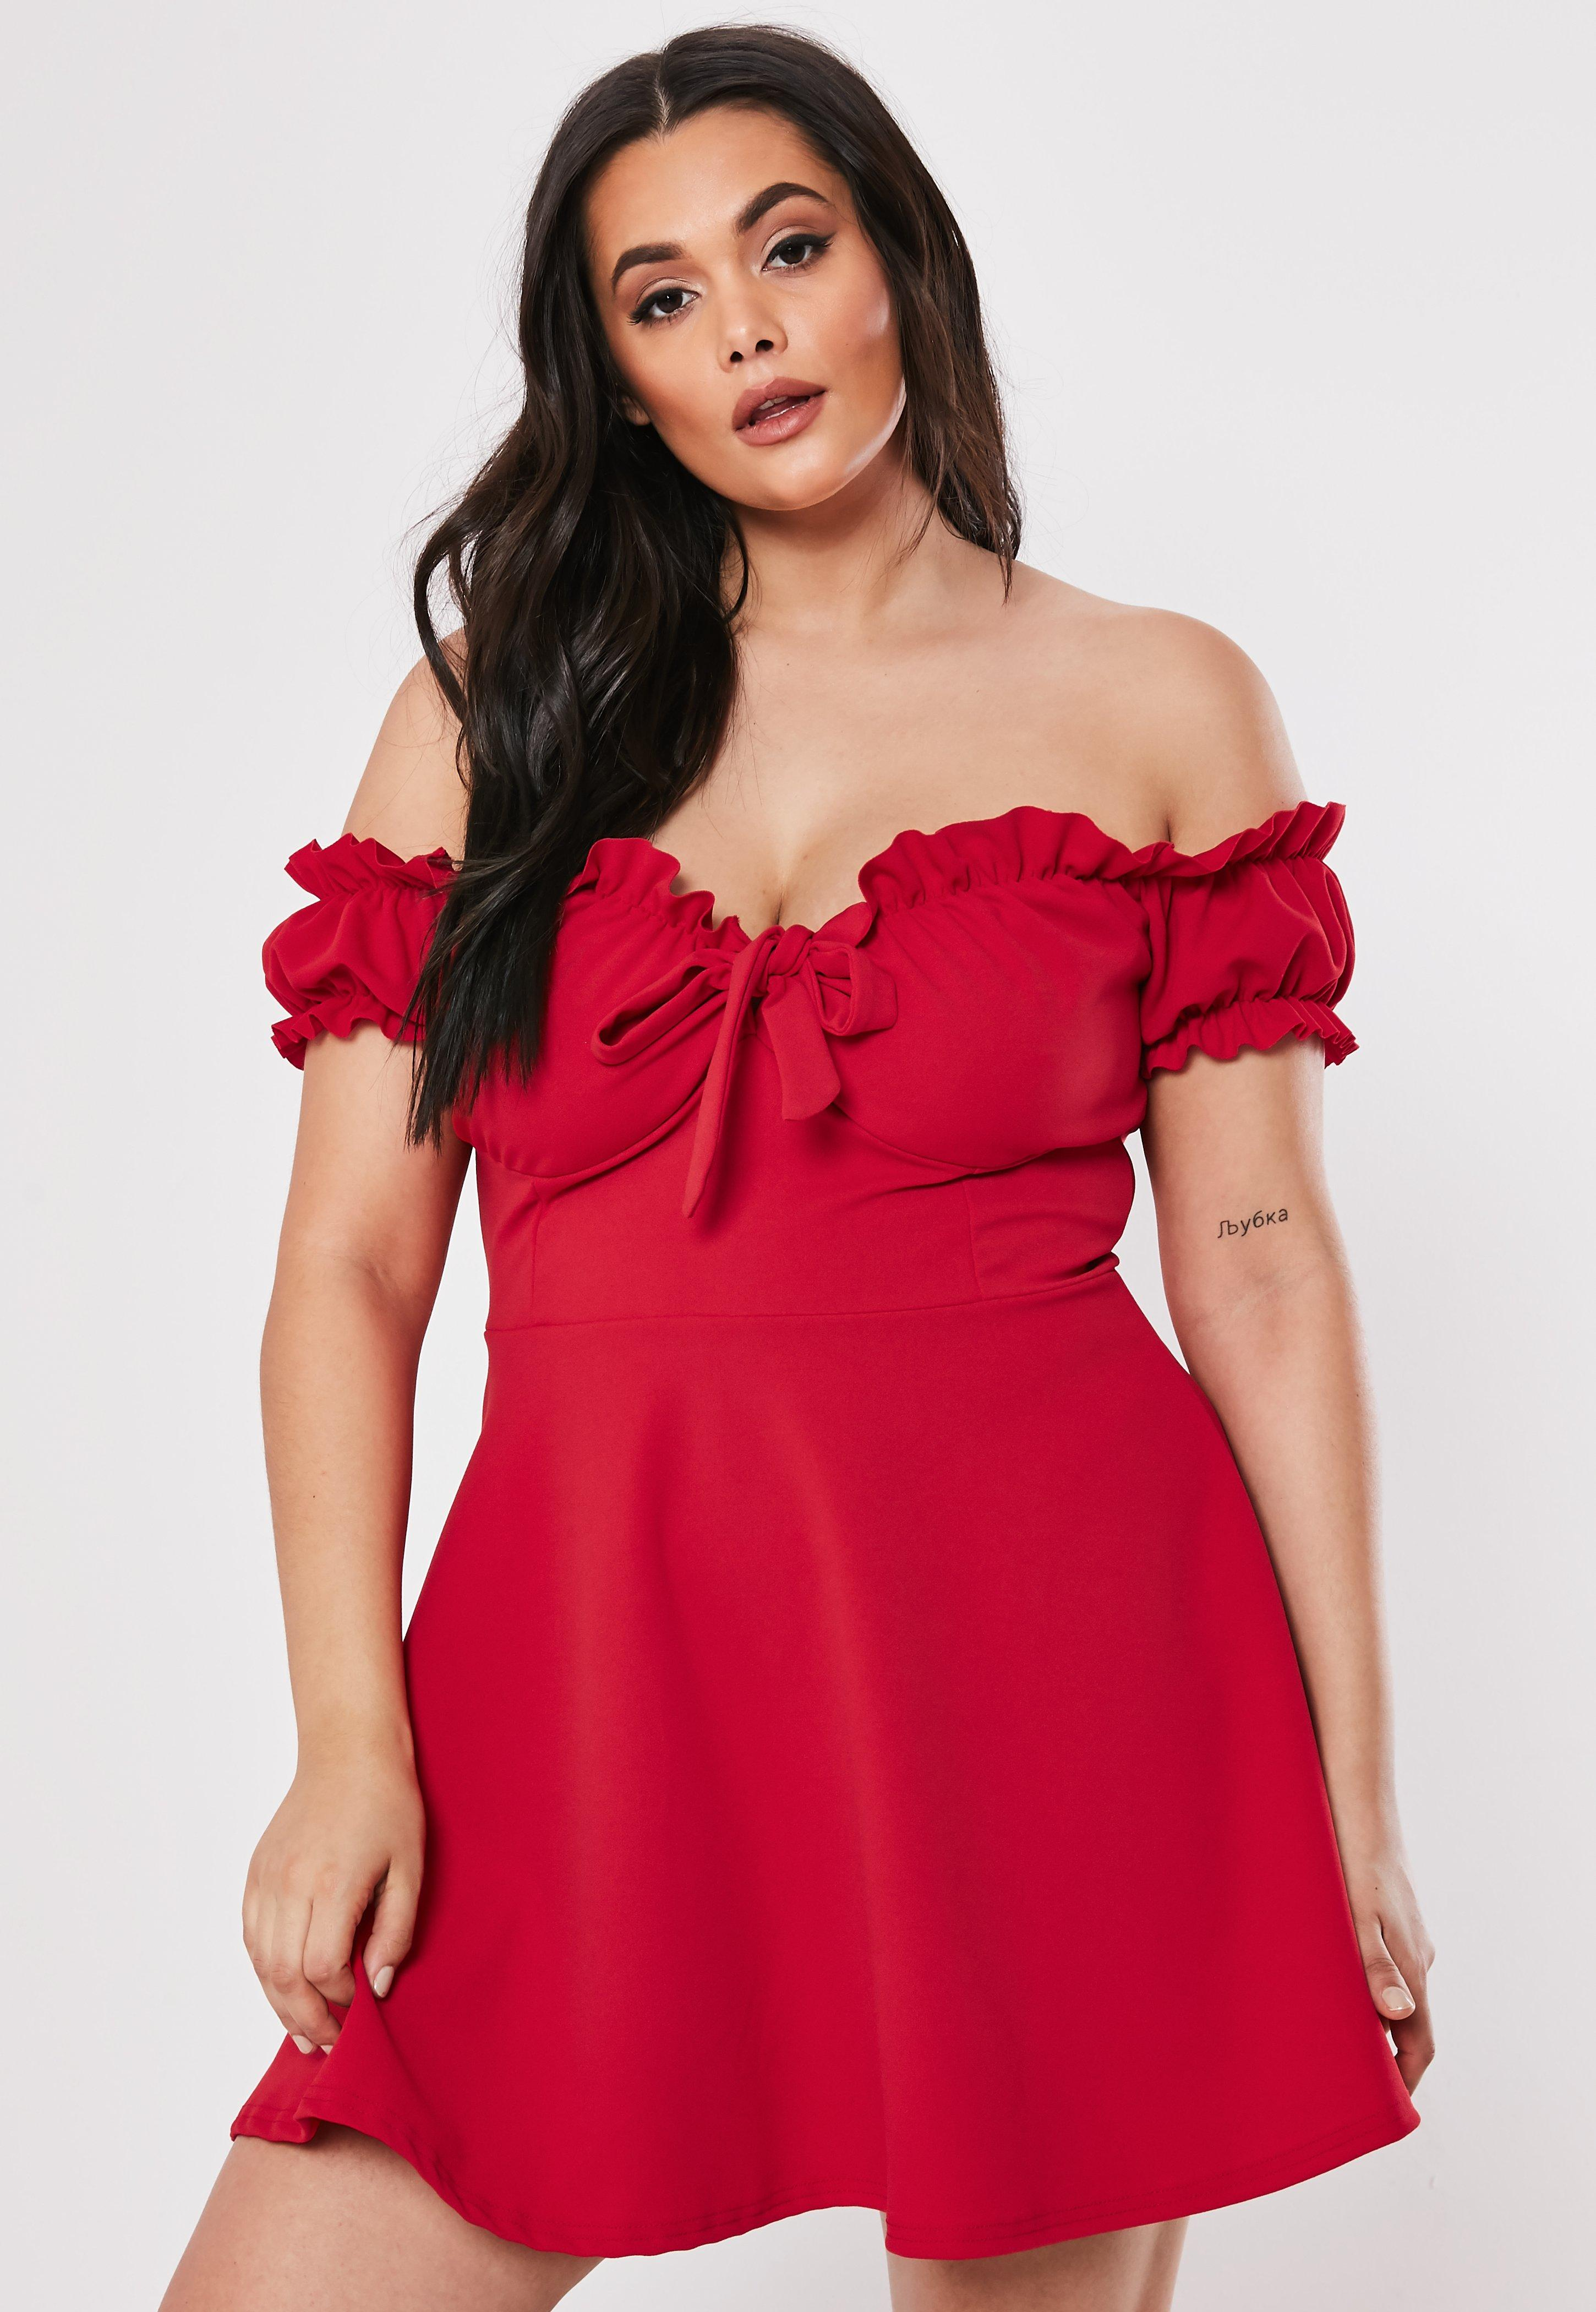 Encolure Robe Tailles Effet Corsage Rouge Grandes zLSqVUpMG